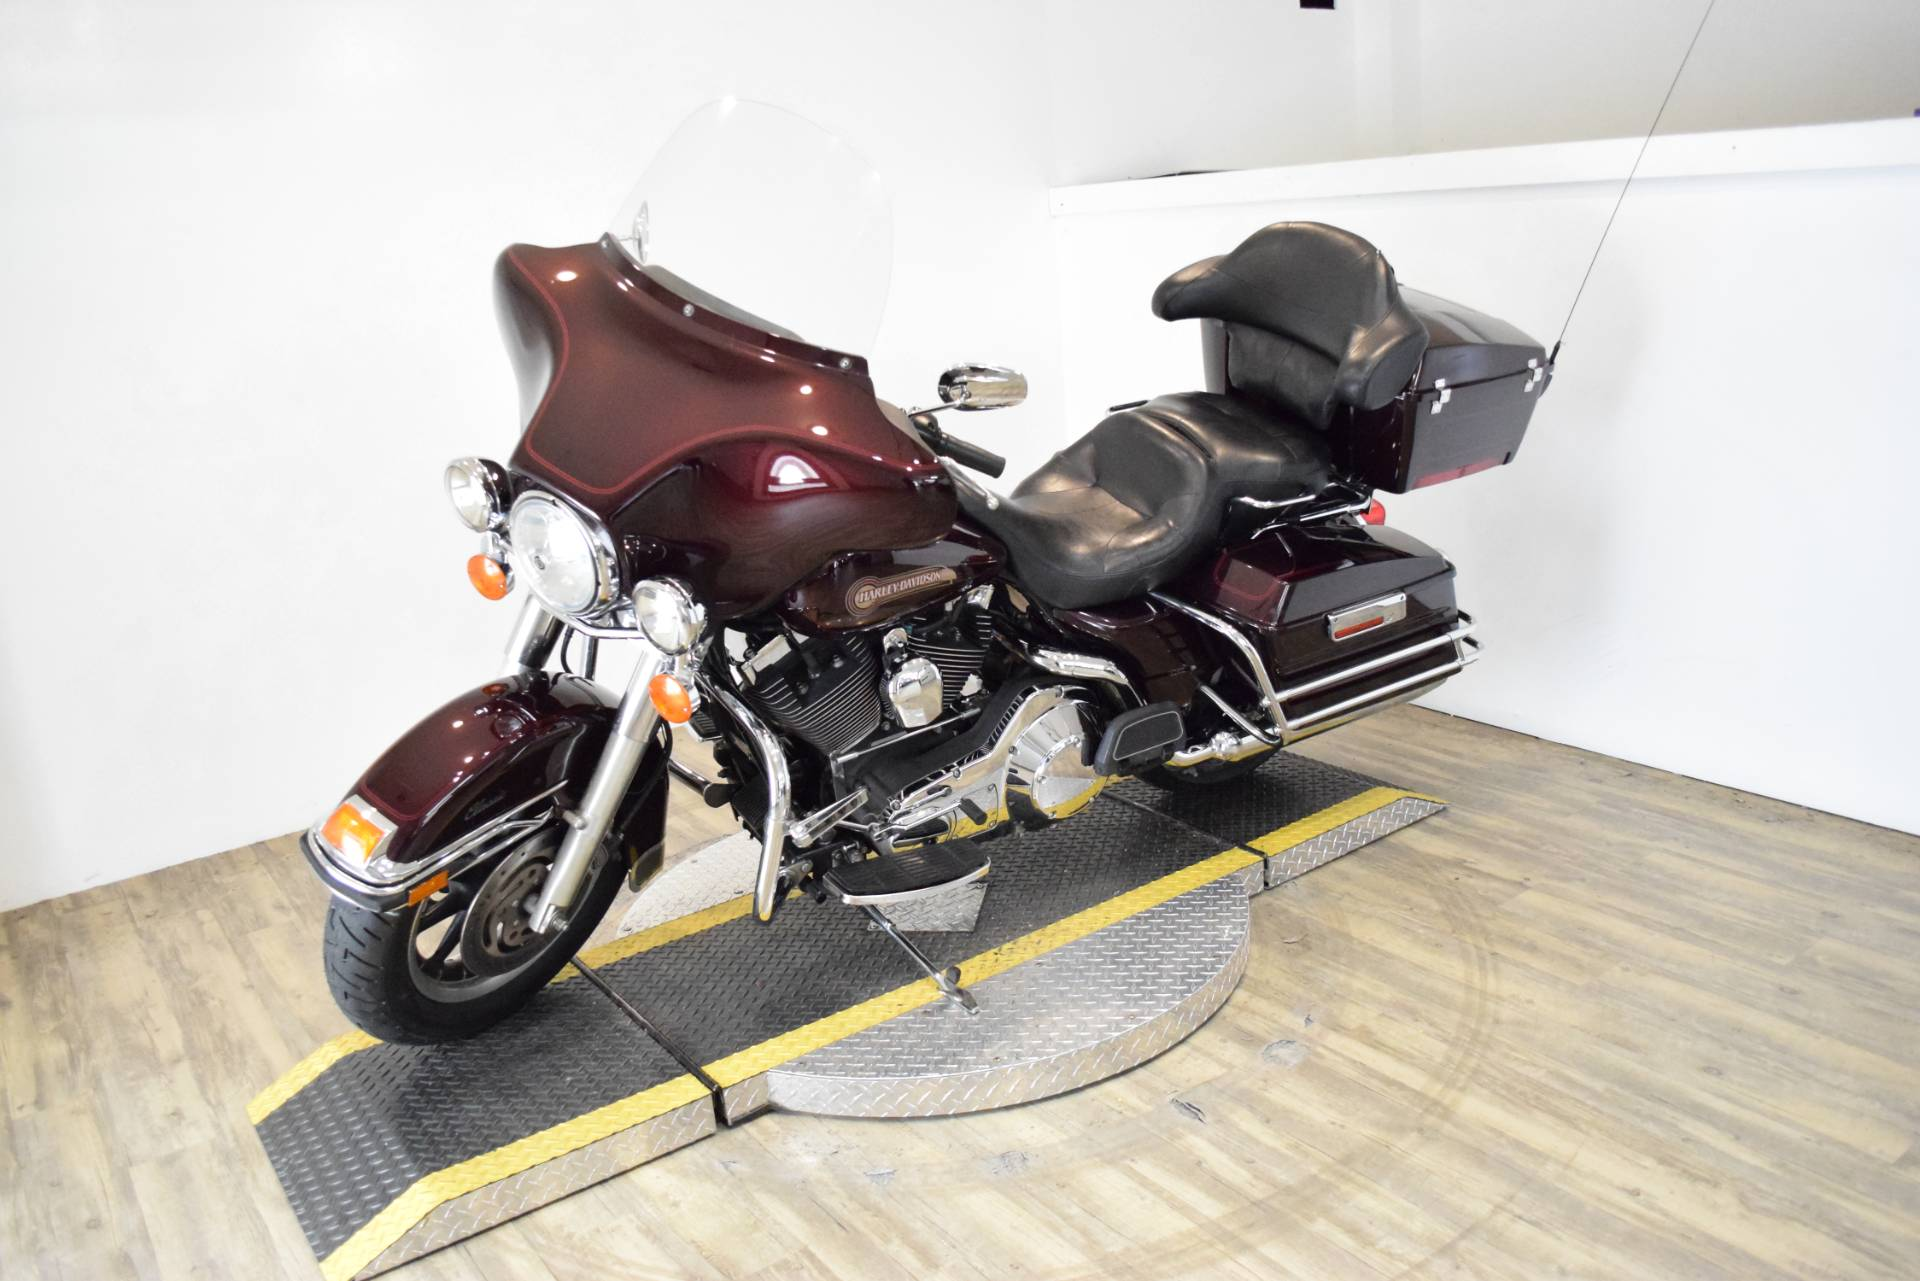 2005 Harley-Davidson FLHTC/FLHTCI Electra Glide® Classic in Wauconda, Illinois - Photo 24